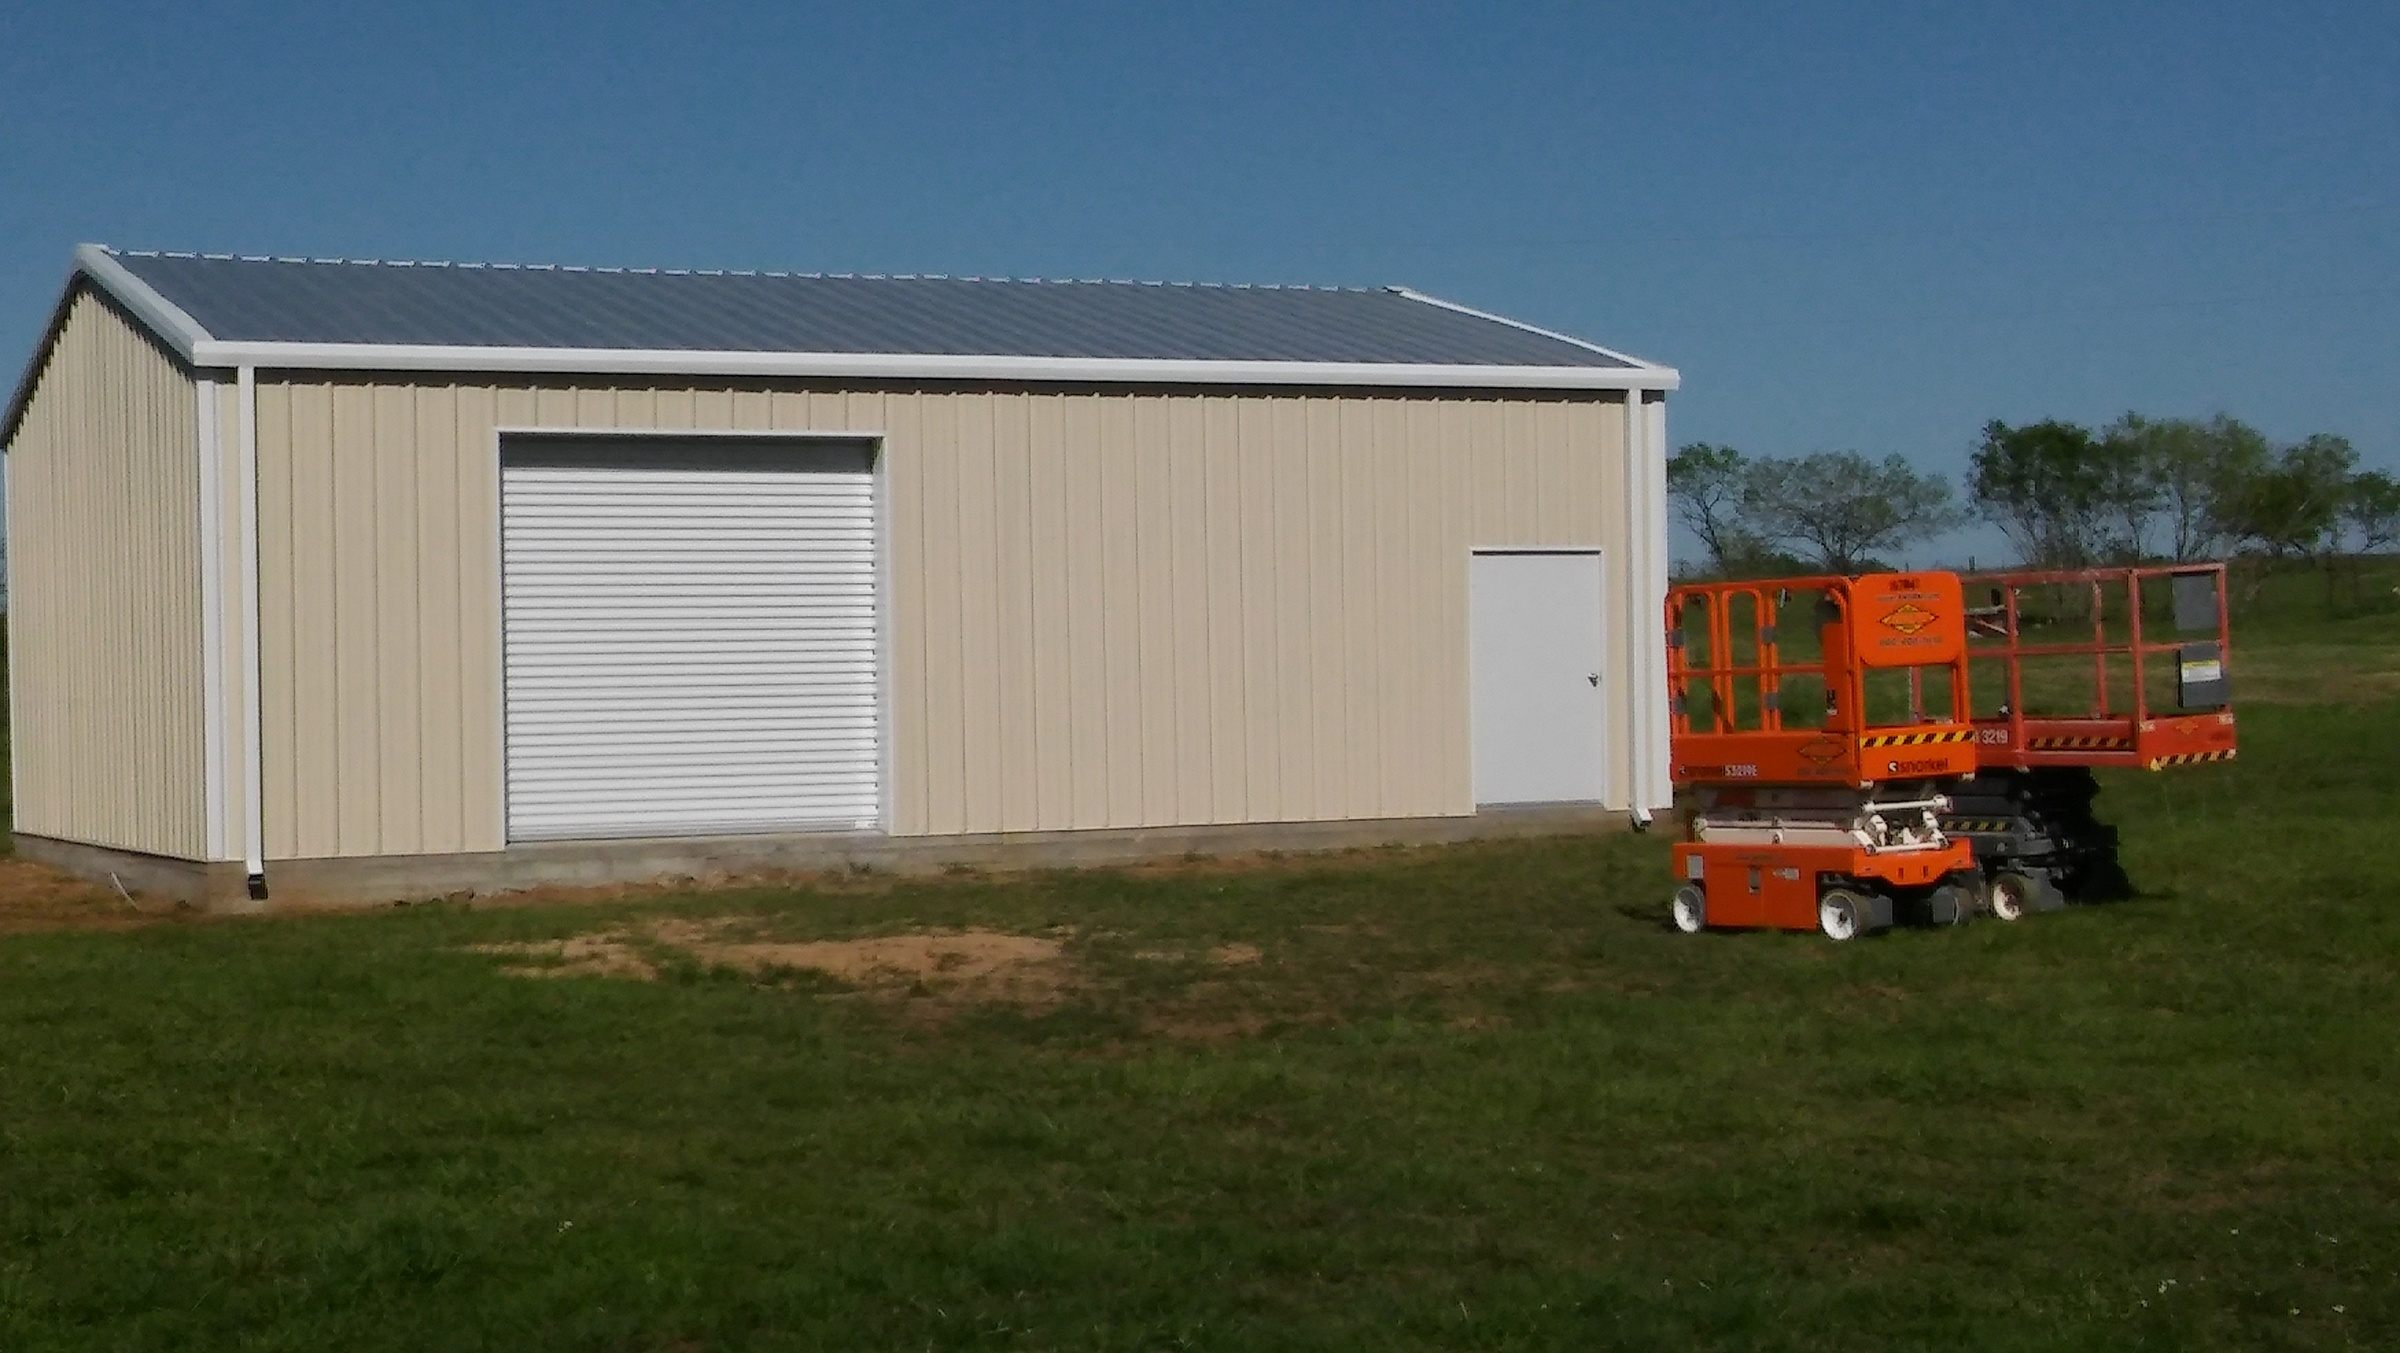 The finished metal Race Car Shop.